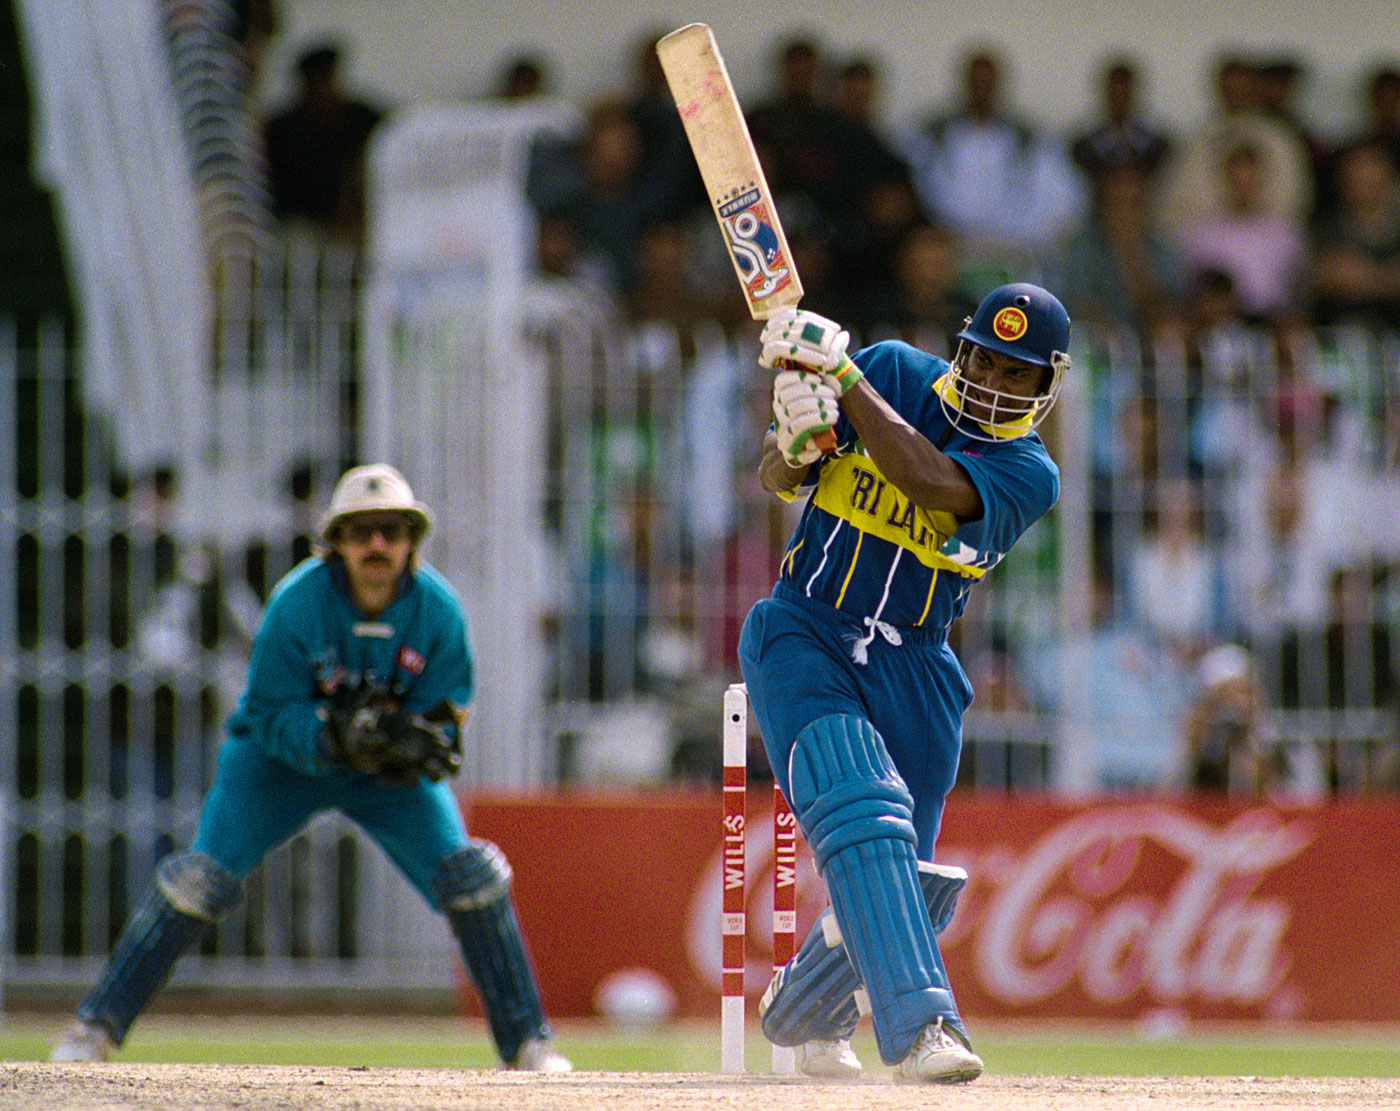 Eighty-two off 44 balls in 13 overs in the quarter-final wasn't enough for Sanath Jayasuriya to win an expensive watch but he went on to get the the Man-of-the-Tournament prize